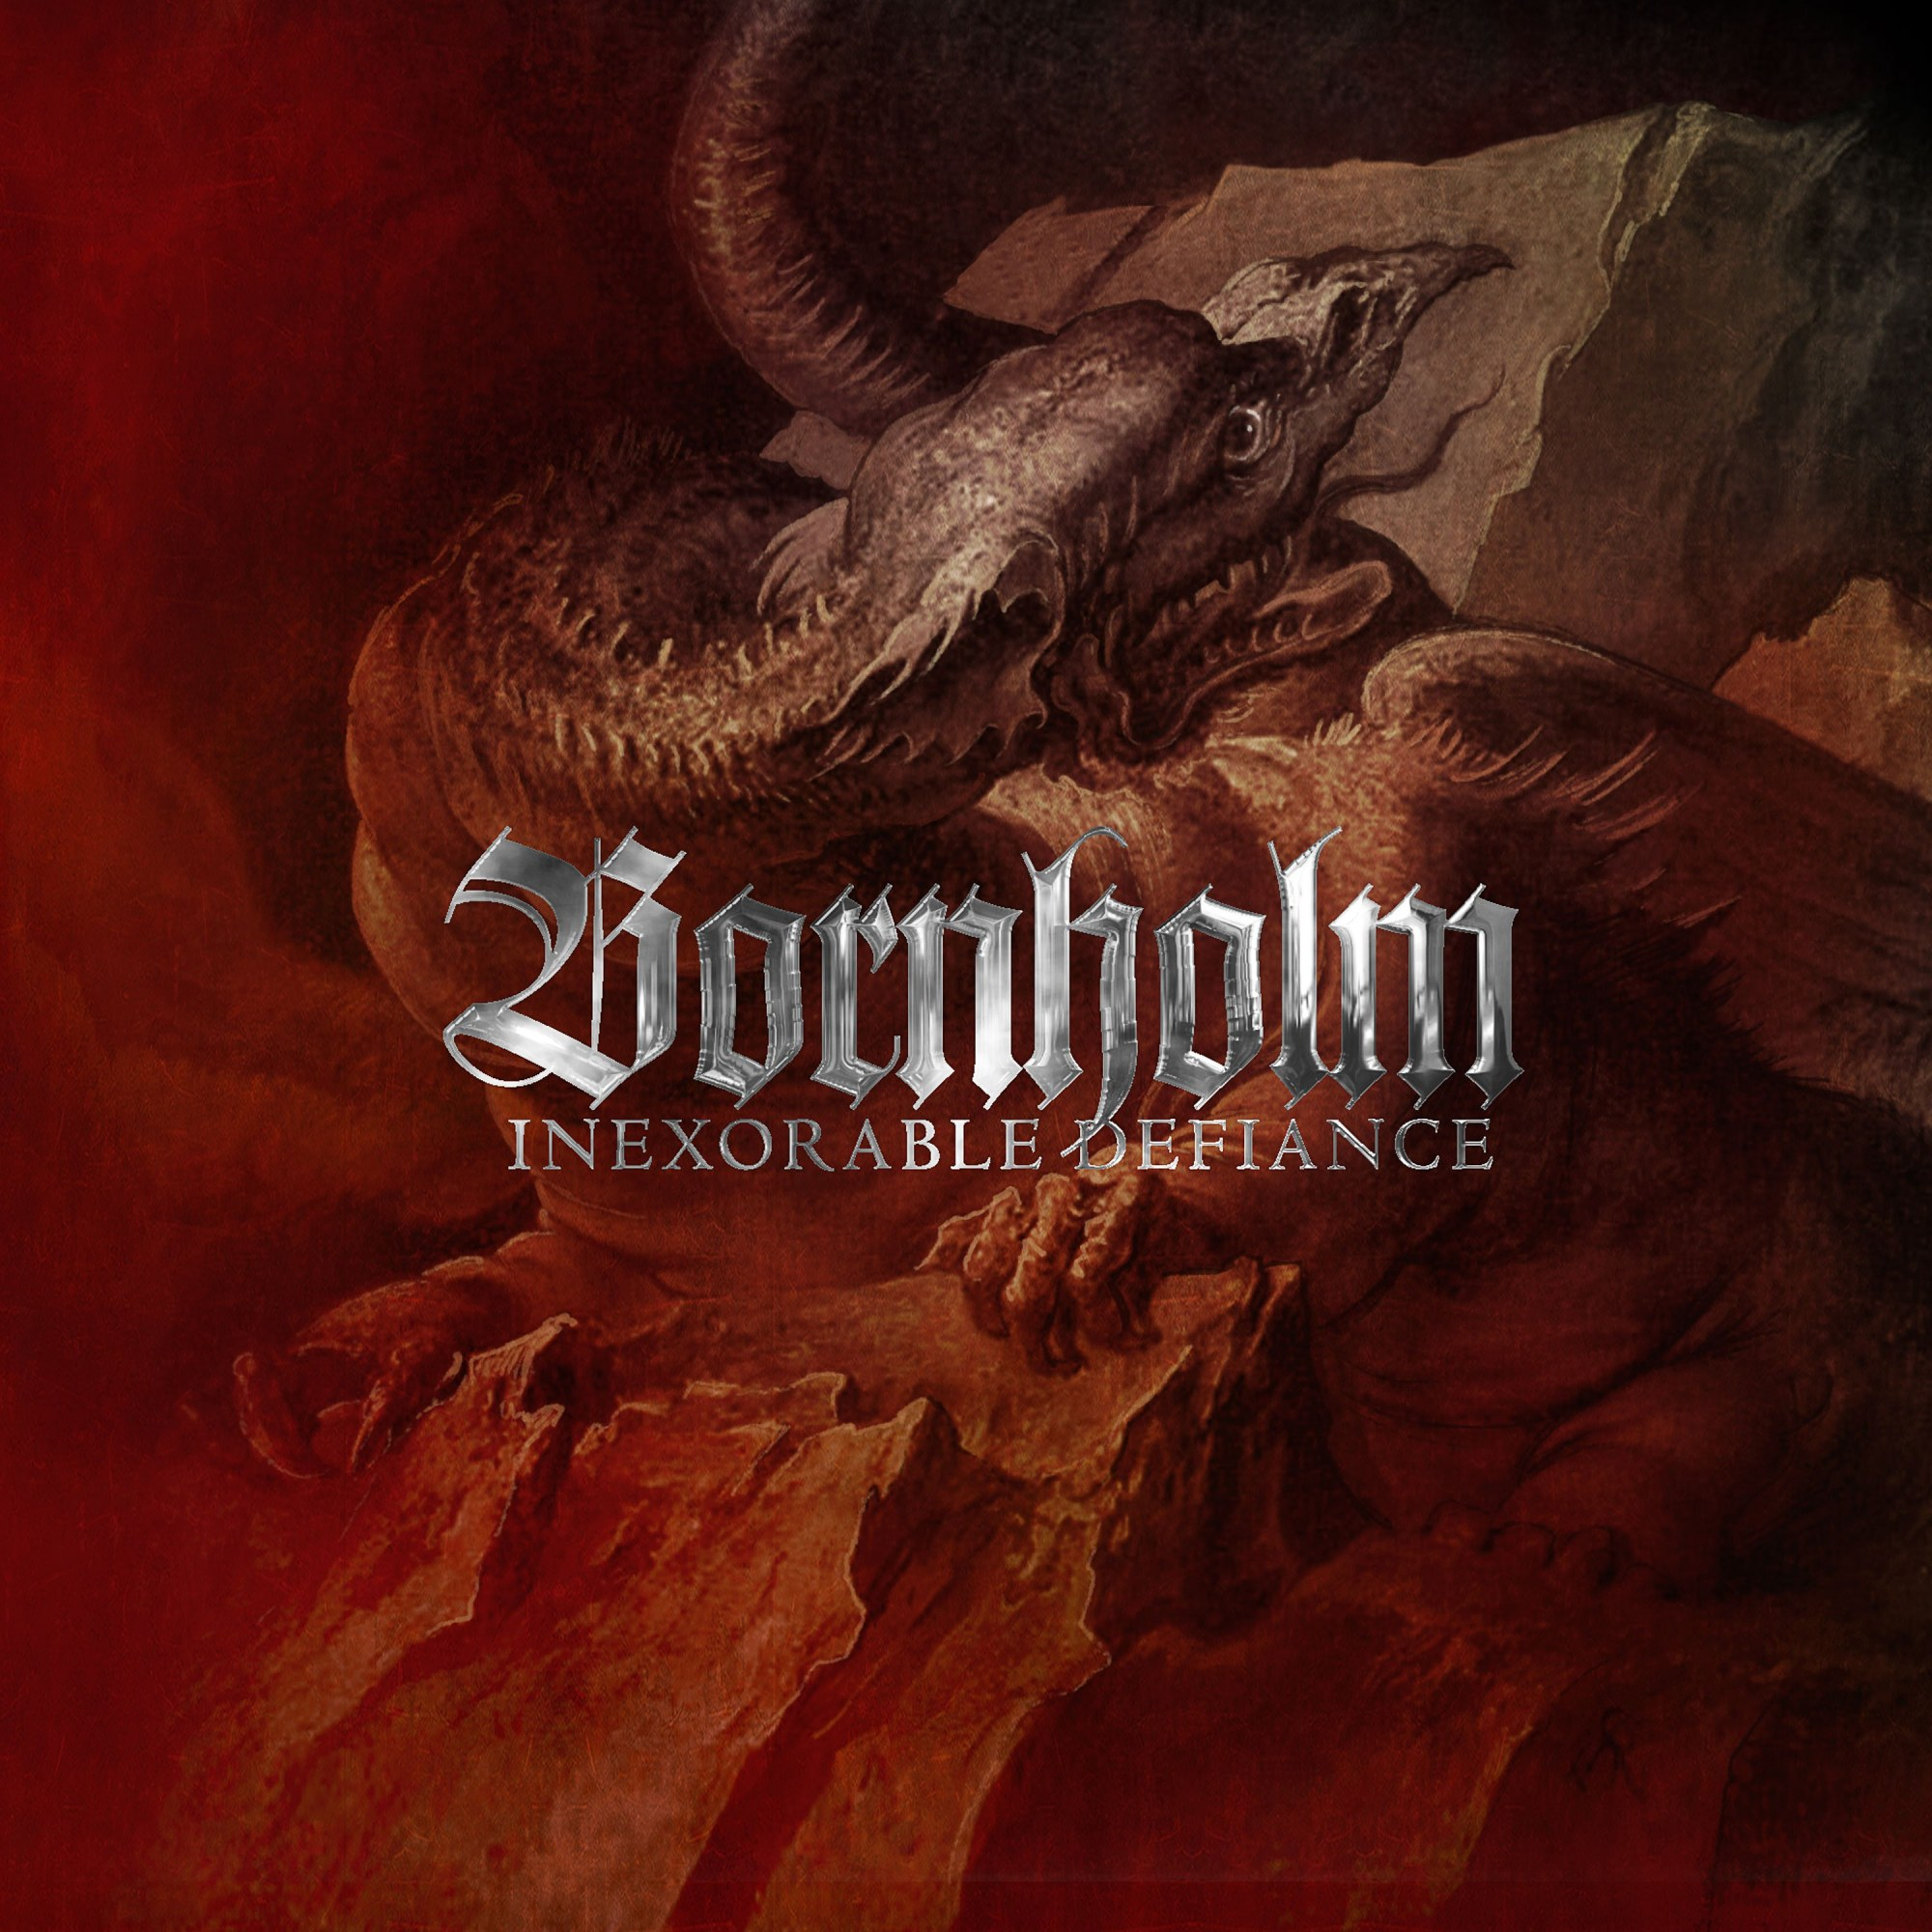 Review for Bornholm - Inexorable Defiance